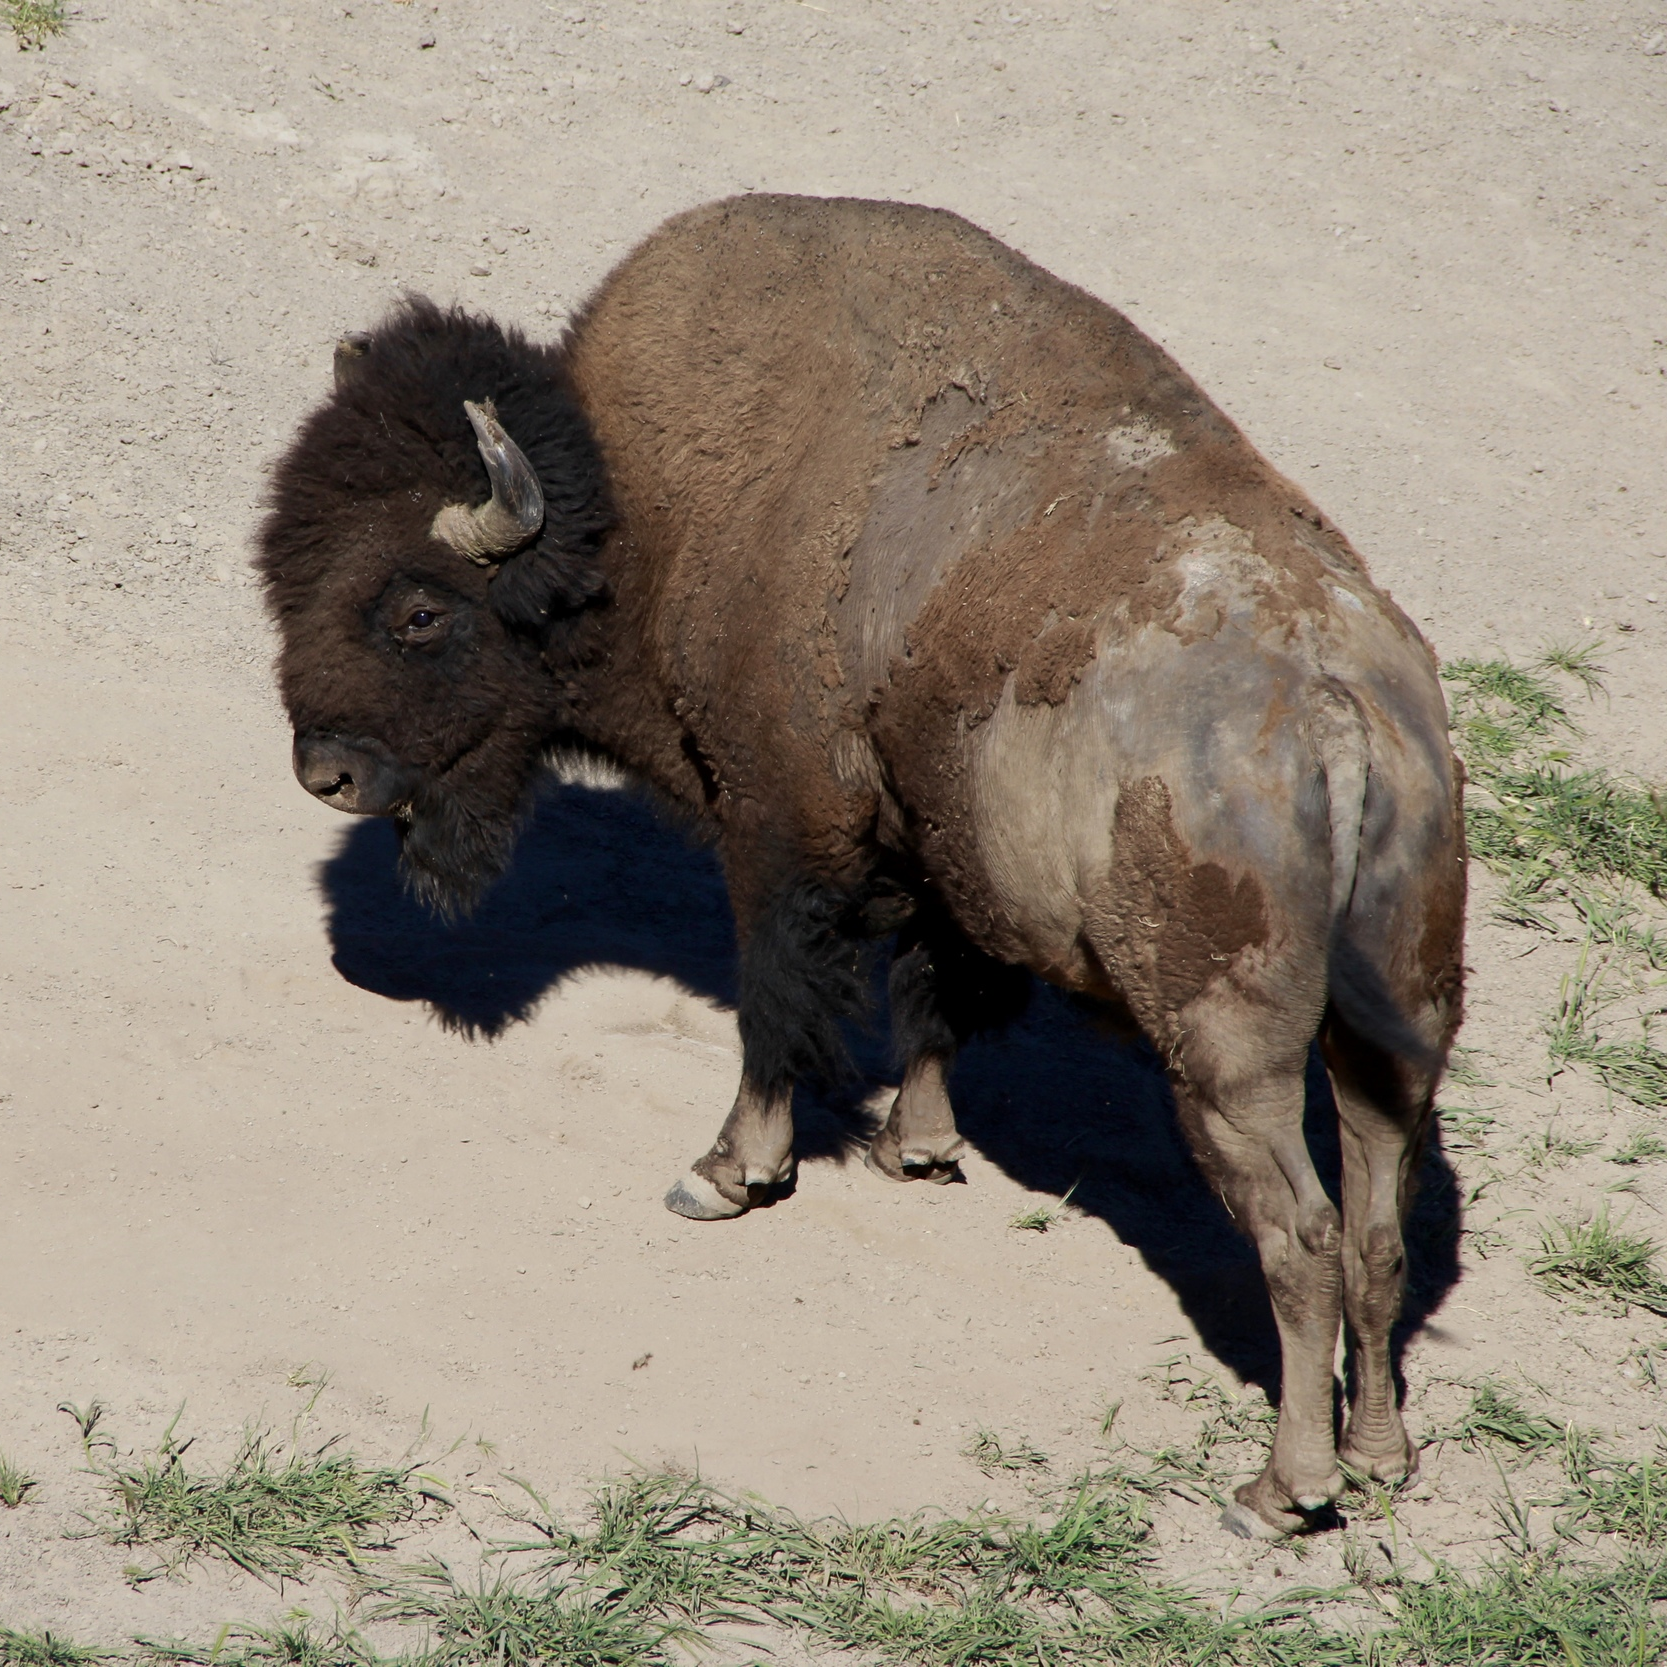 """Pete"" (as he's known on the island), the buffalo that always roams alone"